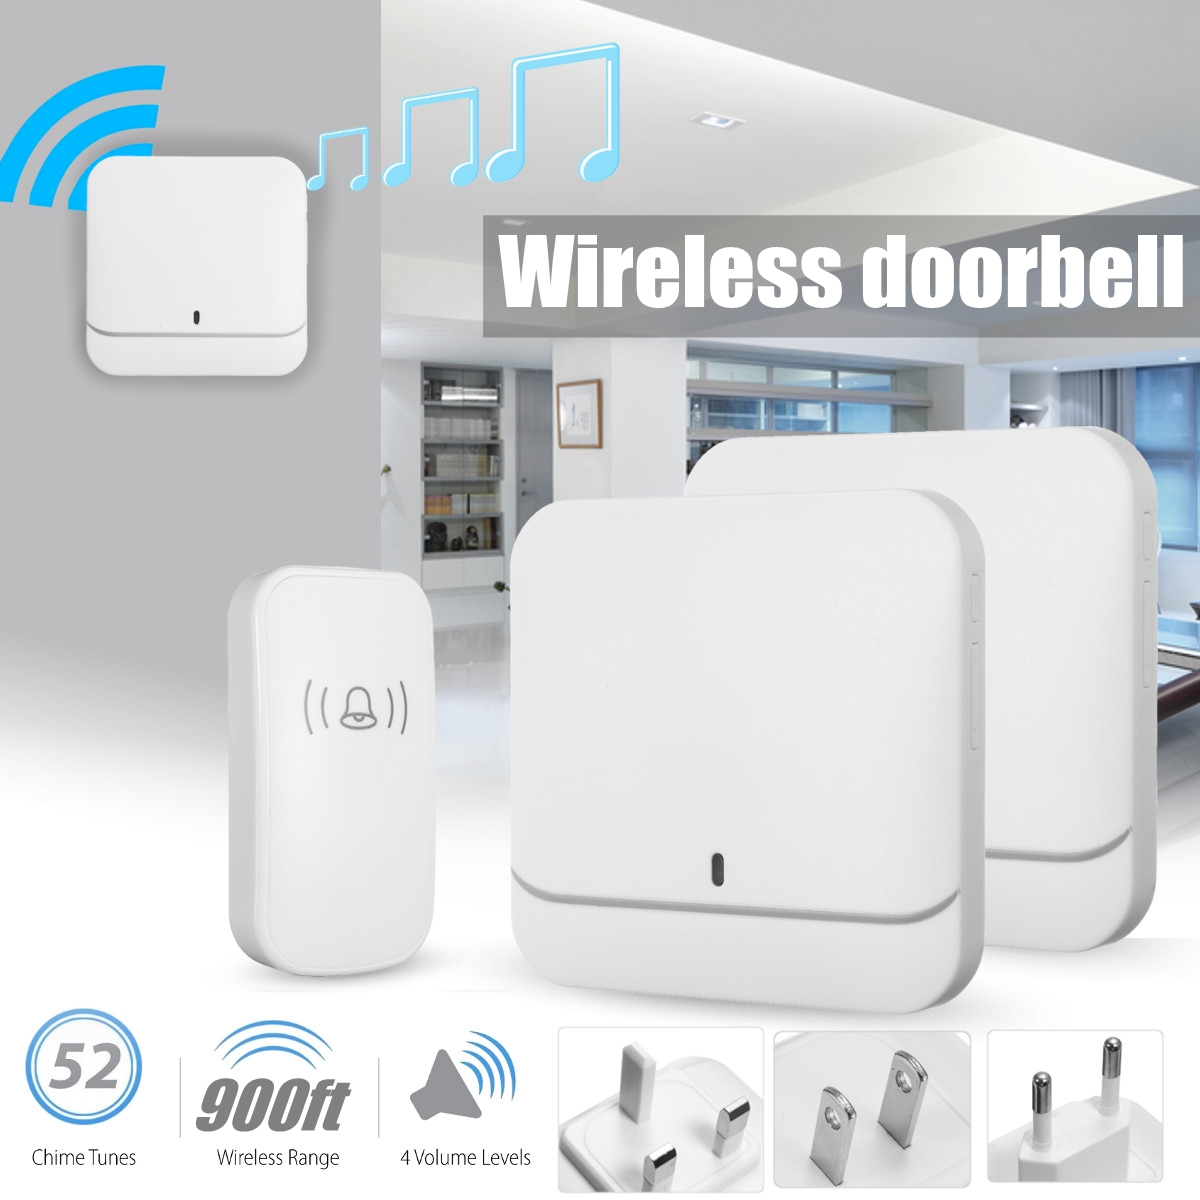 New Wireless Doorbell Waterproof 900ft Remote EU UK US Plug smart Door Bell Chime battery 1 button 2 receiver ACNew Wireless Doorbell Waterproof 900ft Remote EU UK US Plug smart Door Bell Chime battery 1 button 2 receiver AC